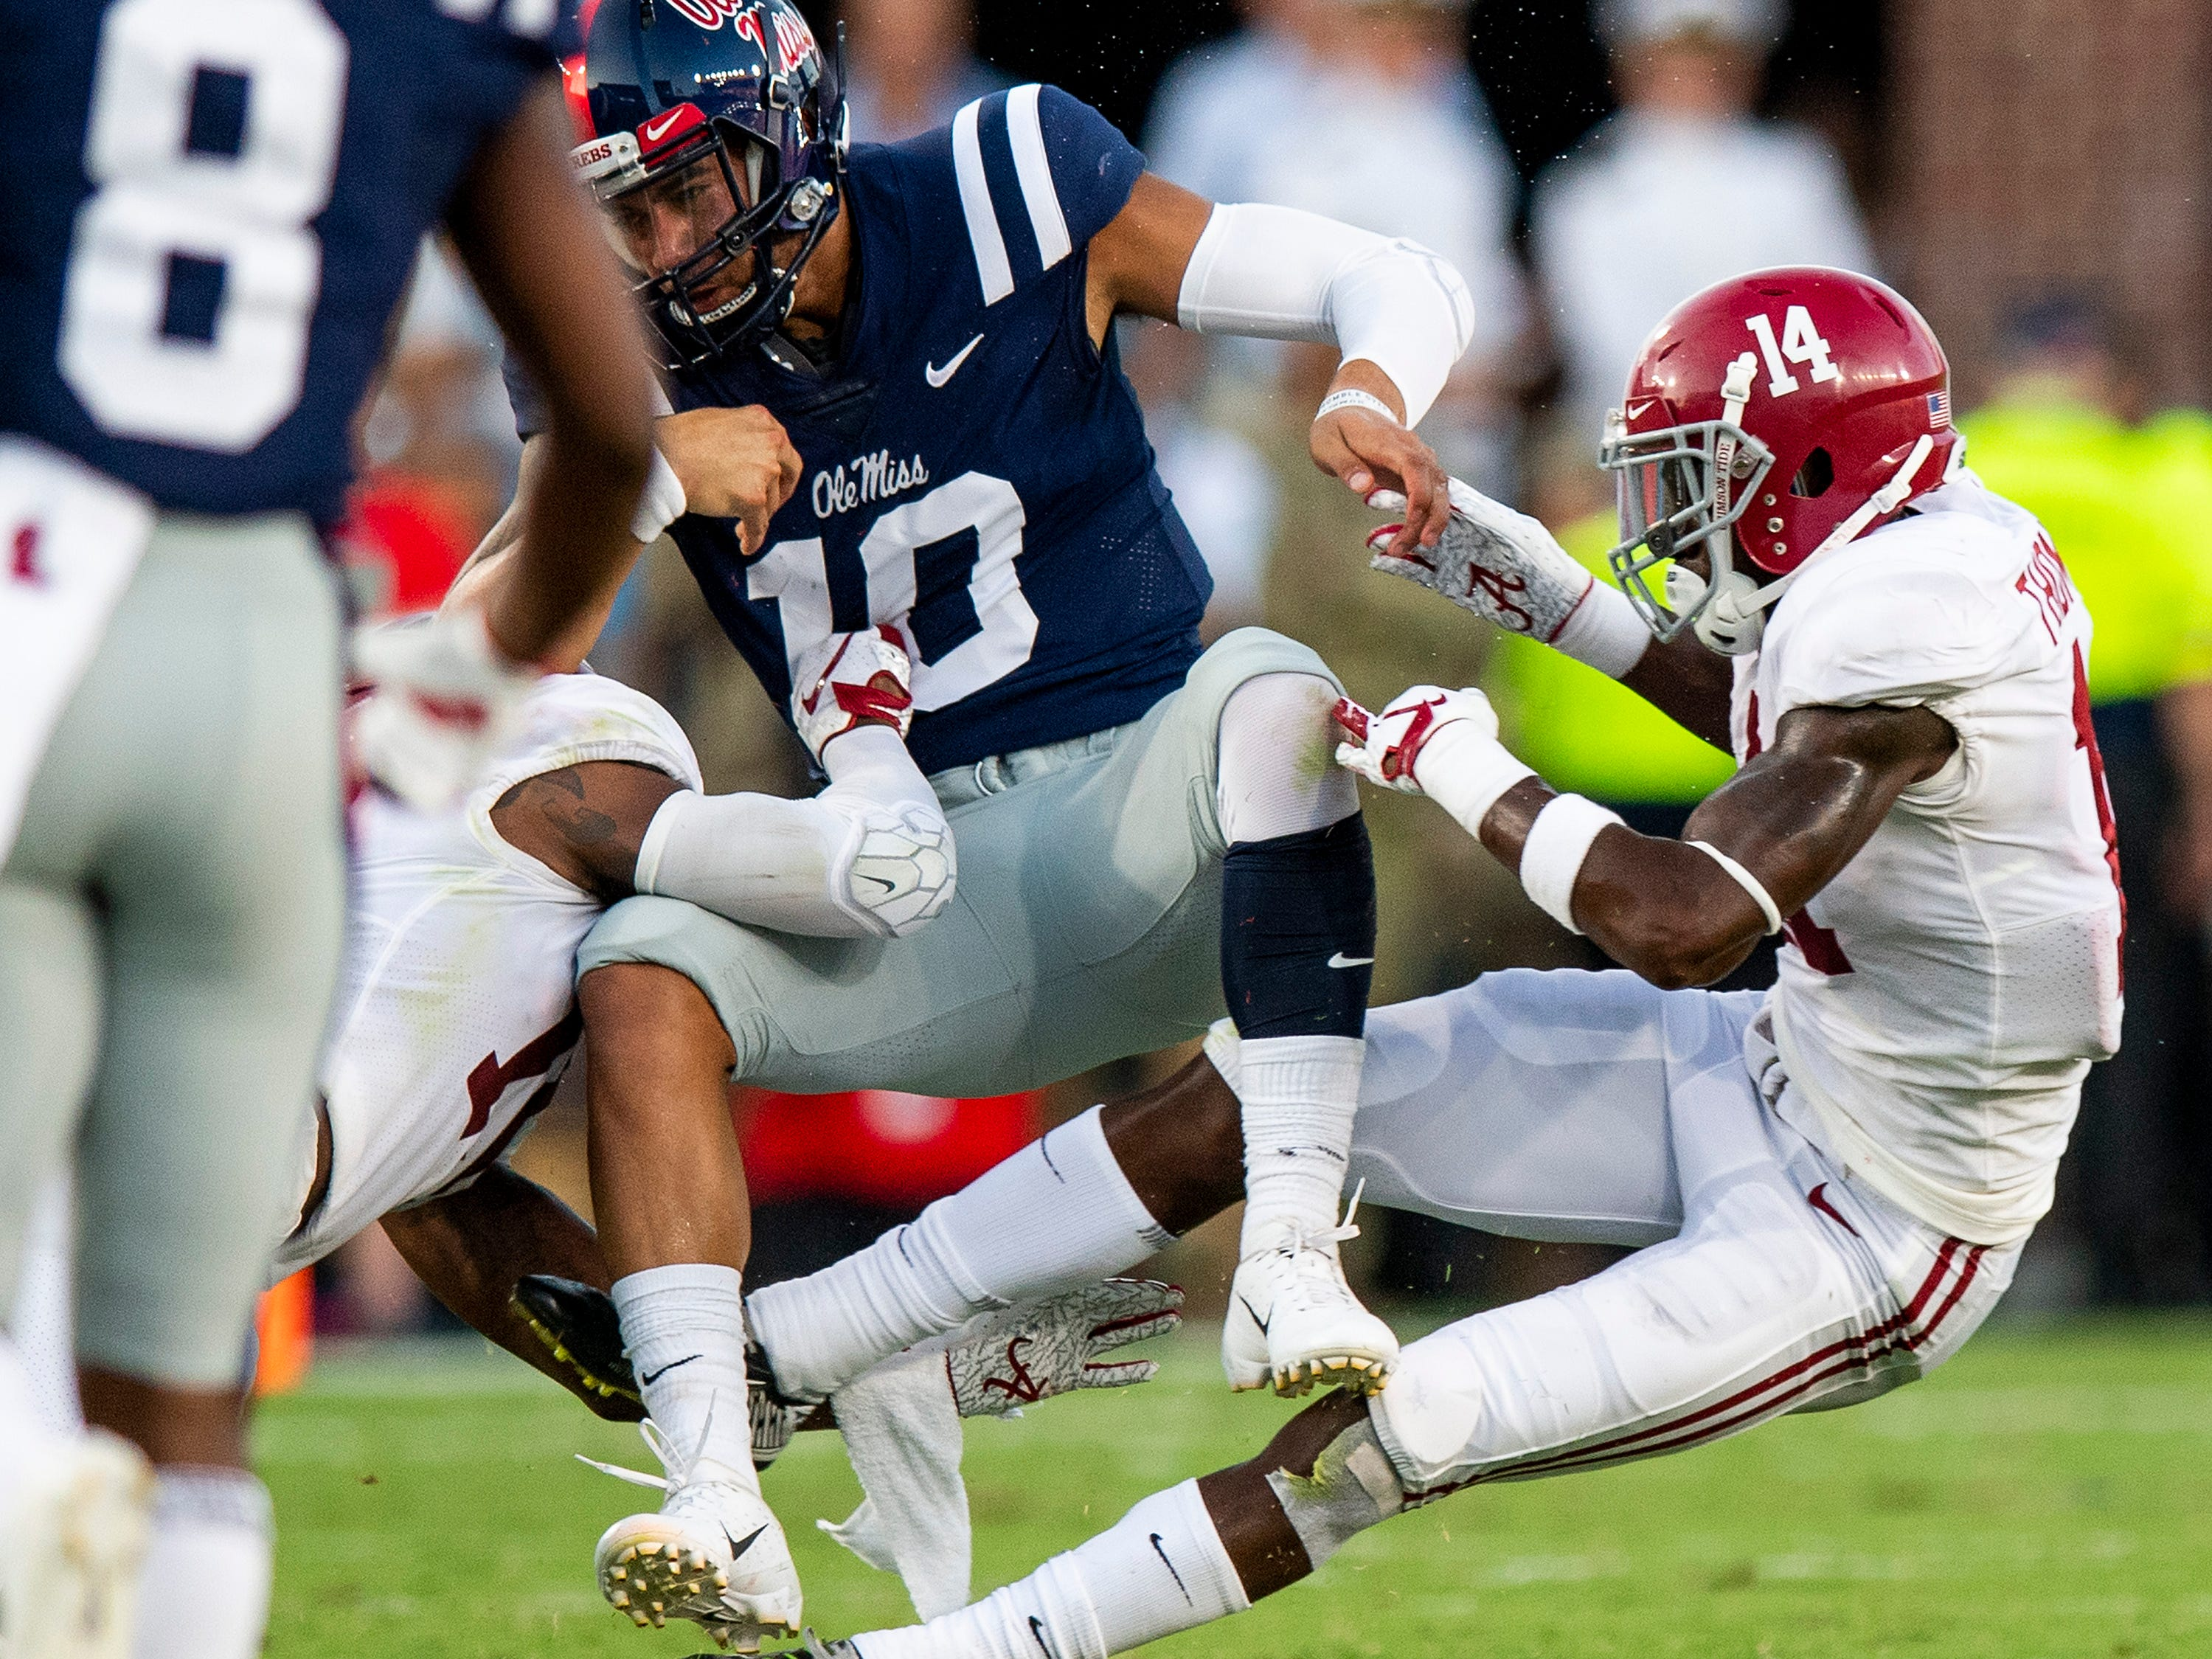 Alabama defensive back Deionte Thompson (14) and defensive back Xavier McKinney (15) tackle Ole Miss quarterback Jordan Ta'amu (10) causing a fumble In first half action in Oxford, Ms., on Saturday September 15, 2018.